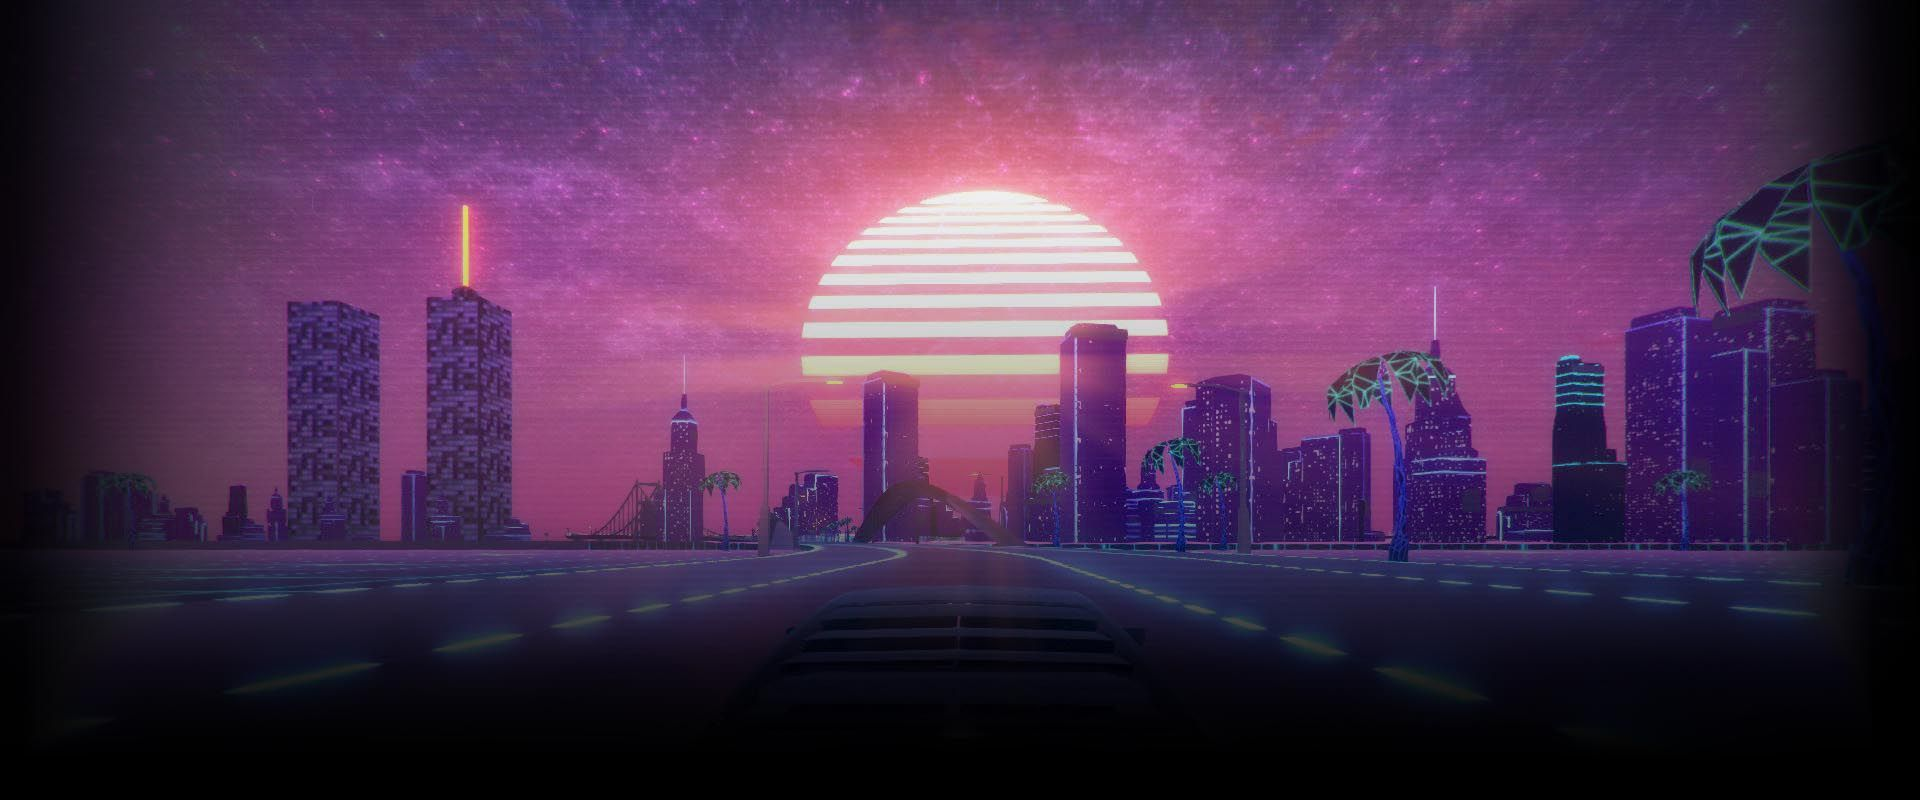 Steam Community Guide The Most Vaporwave Aesthetic Vaporwave Wallpaper Vaporwave Aesthetic Vaporwave